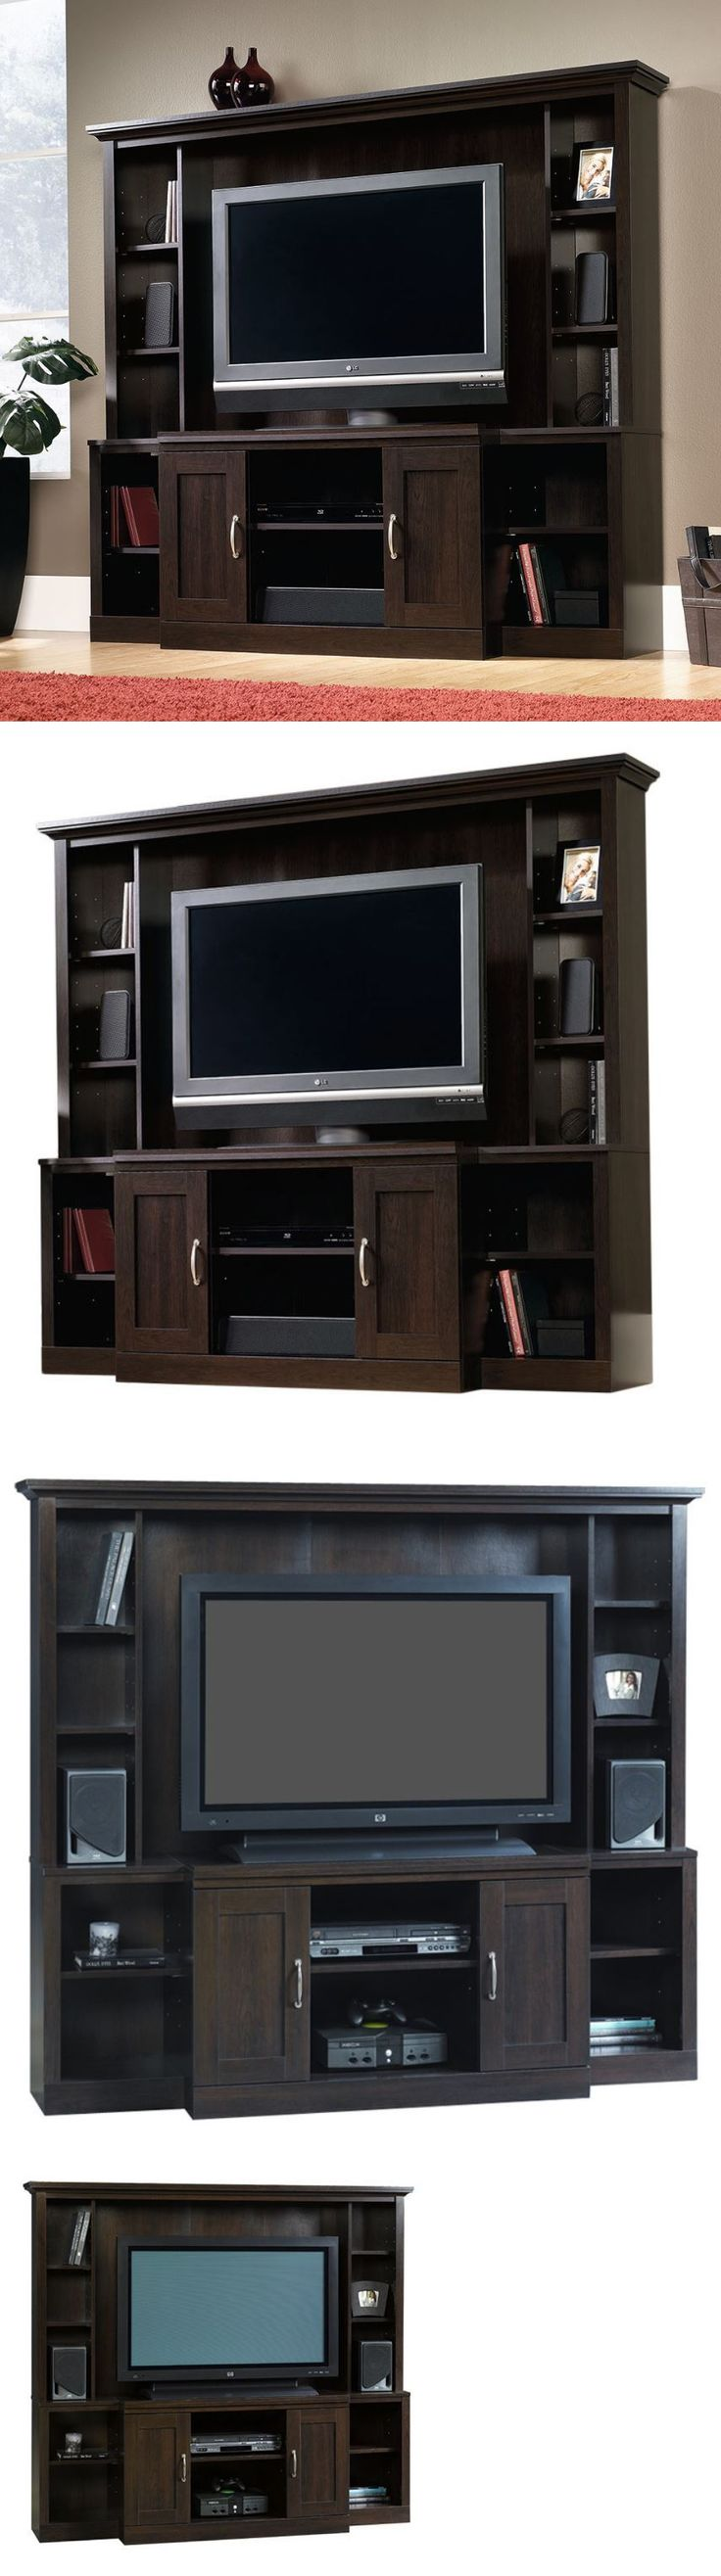 Entertainment Units TV Stands: Entertainment Center Wall Unit Door Tv Stand Flatscreen Media Console Cabinet BUY IT NOW ONLY: $297.95